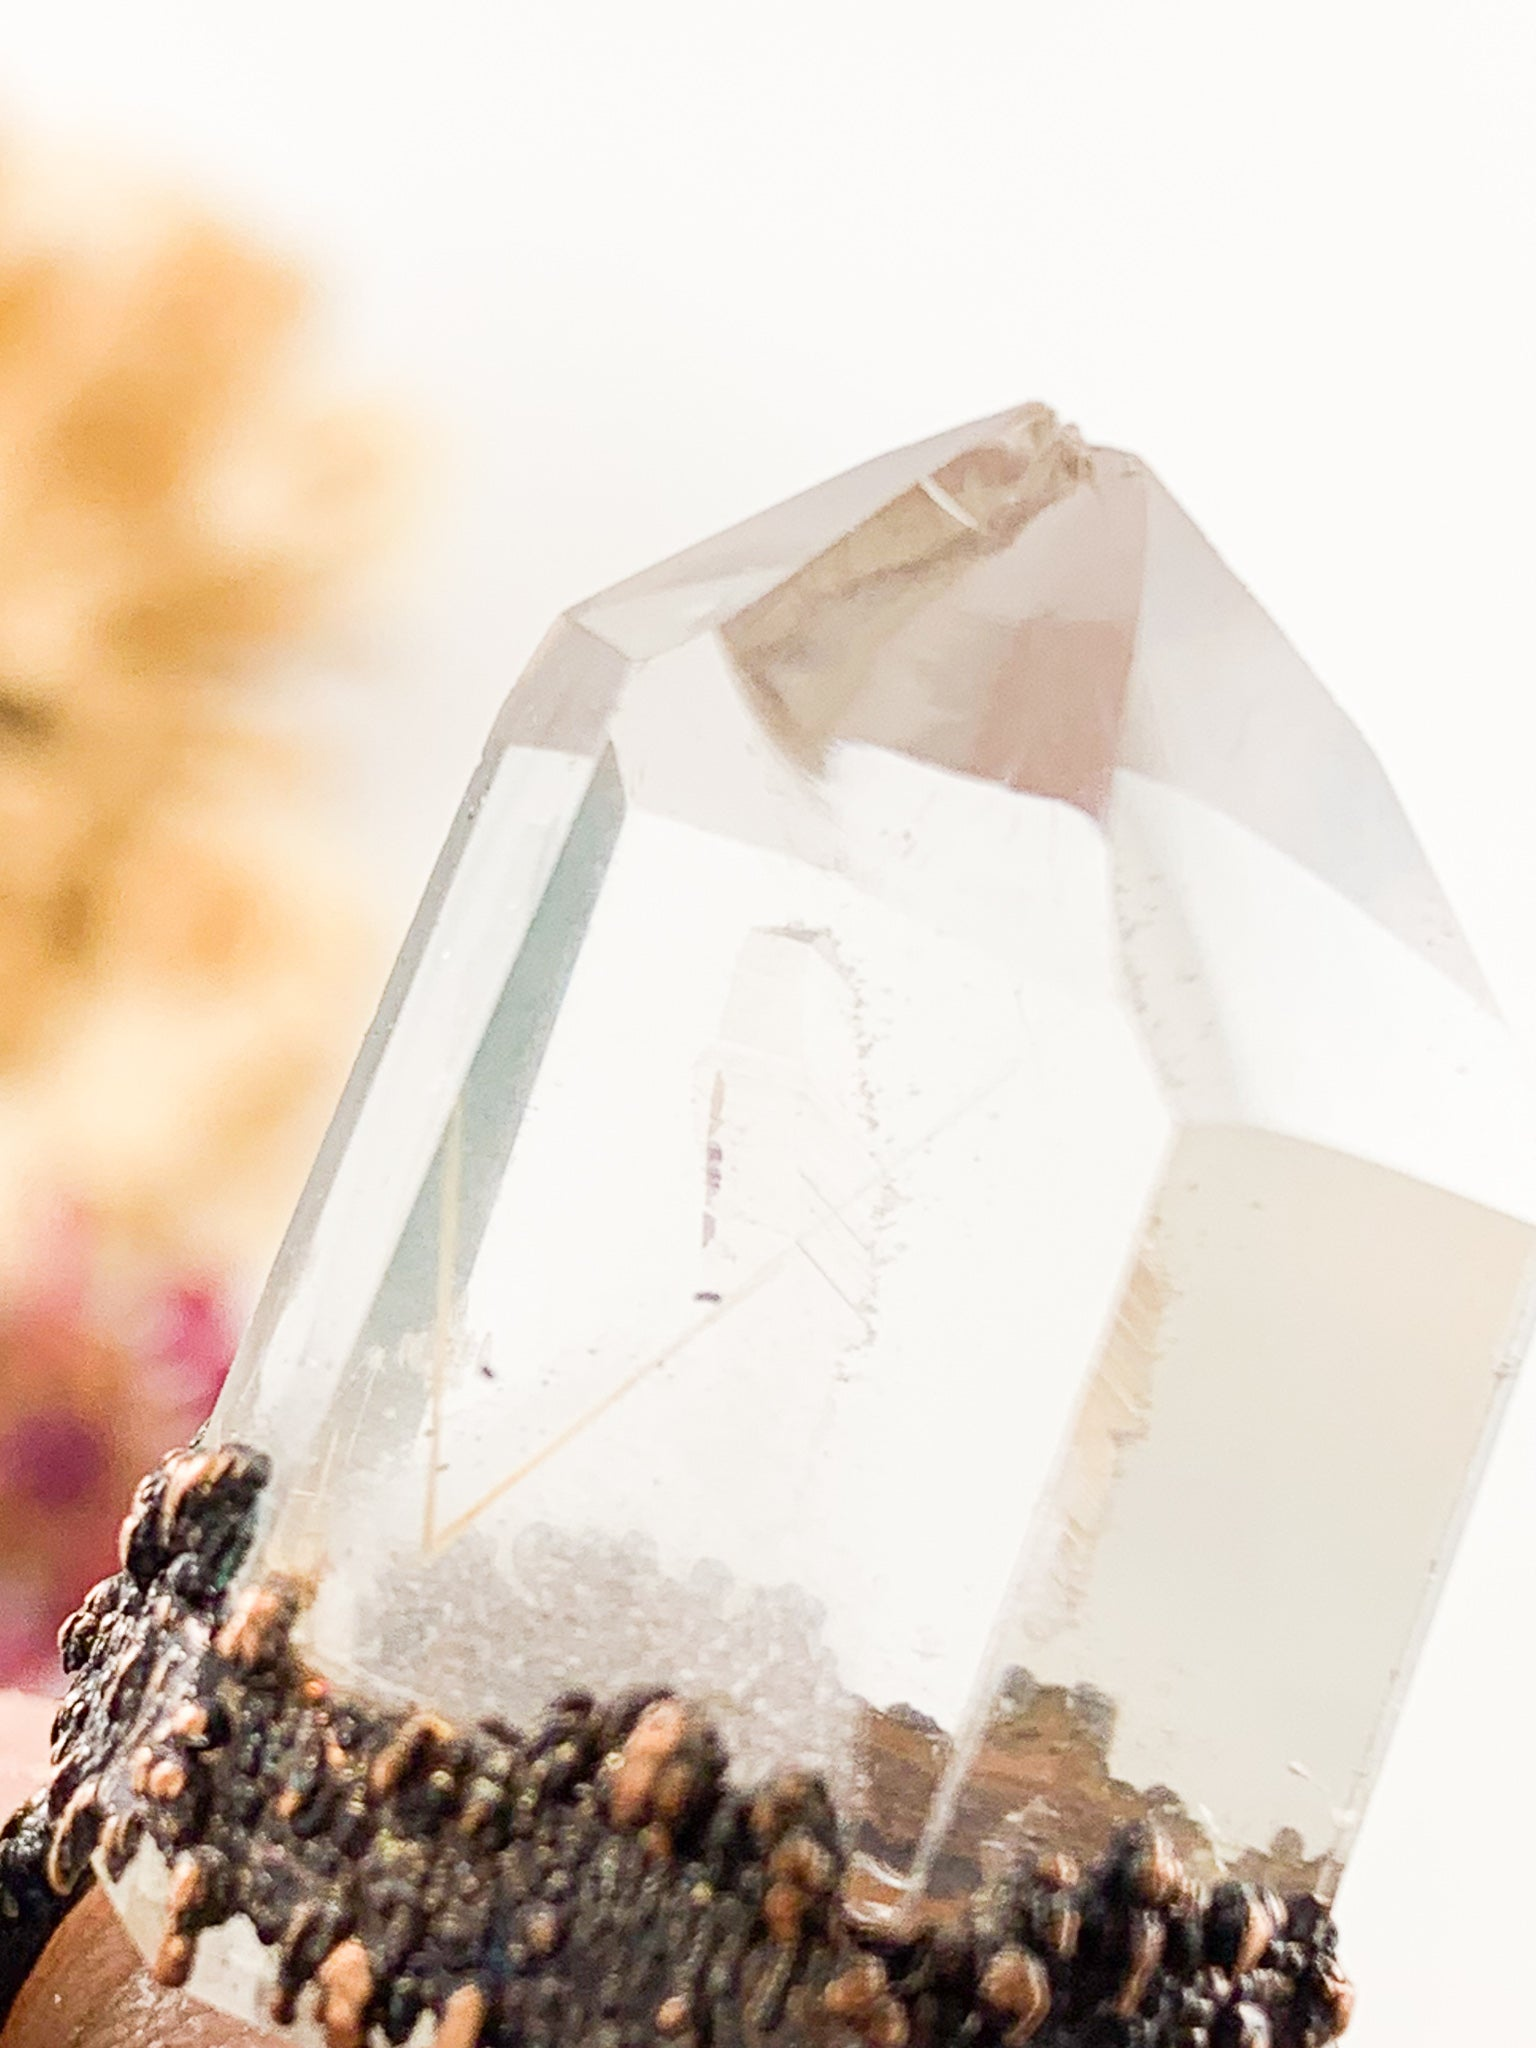 Phantom Rutile Quartz